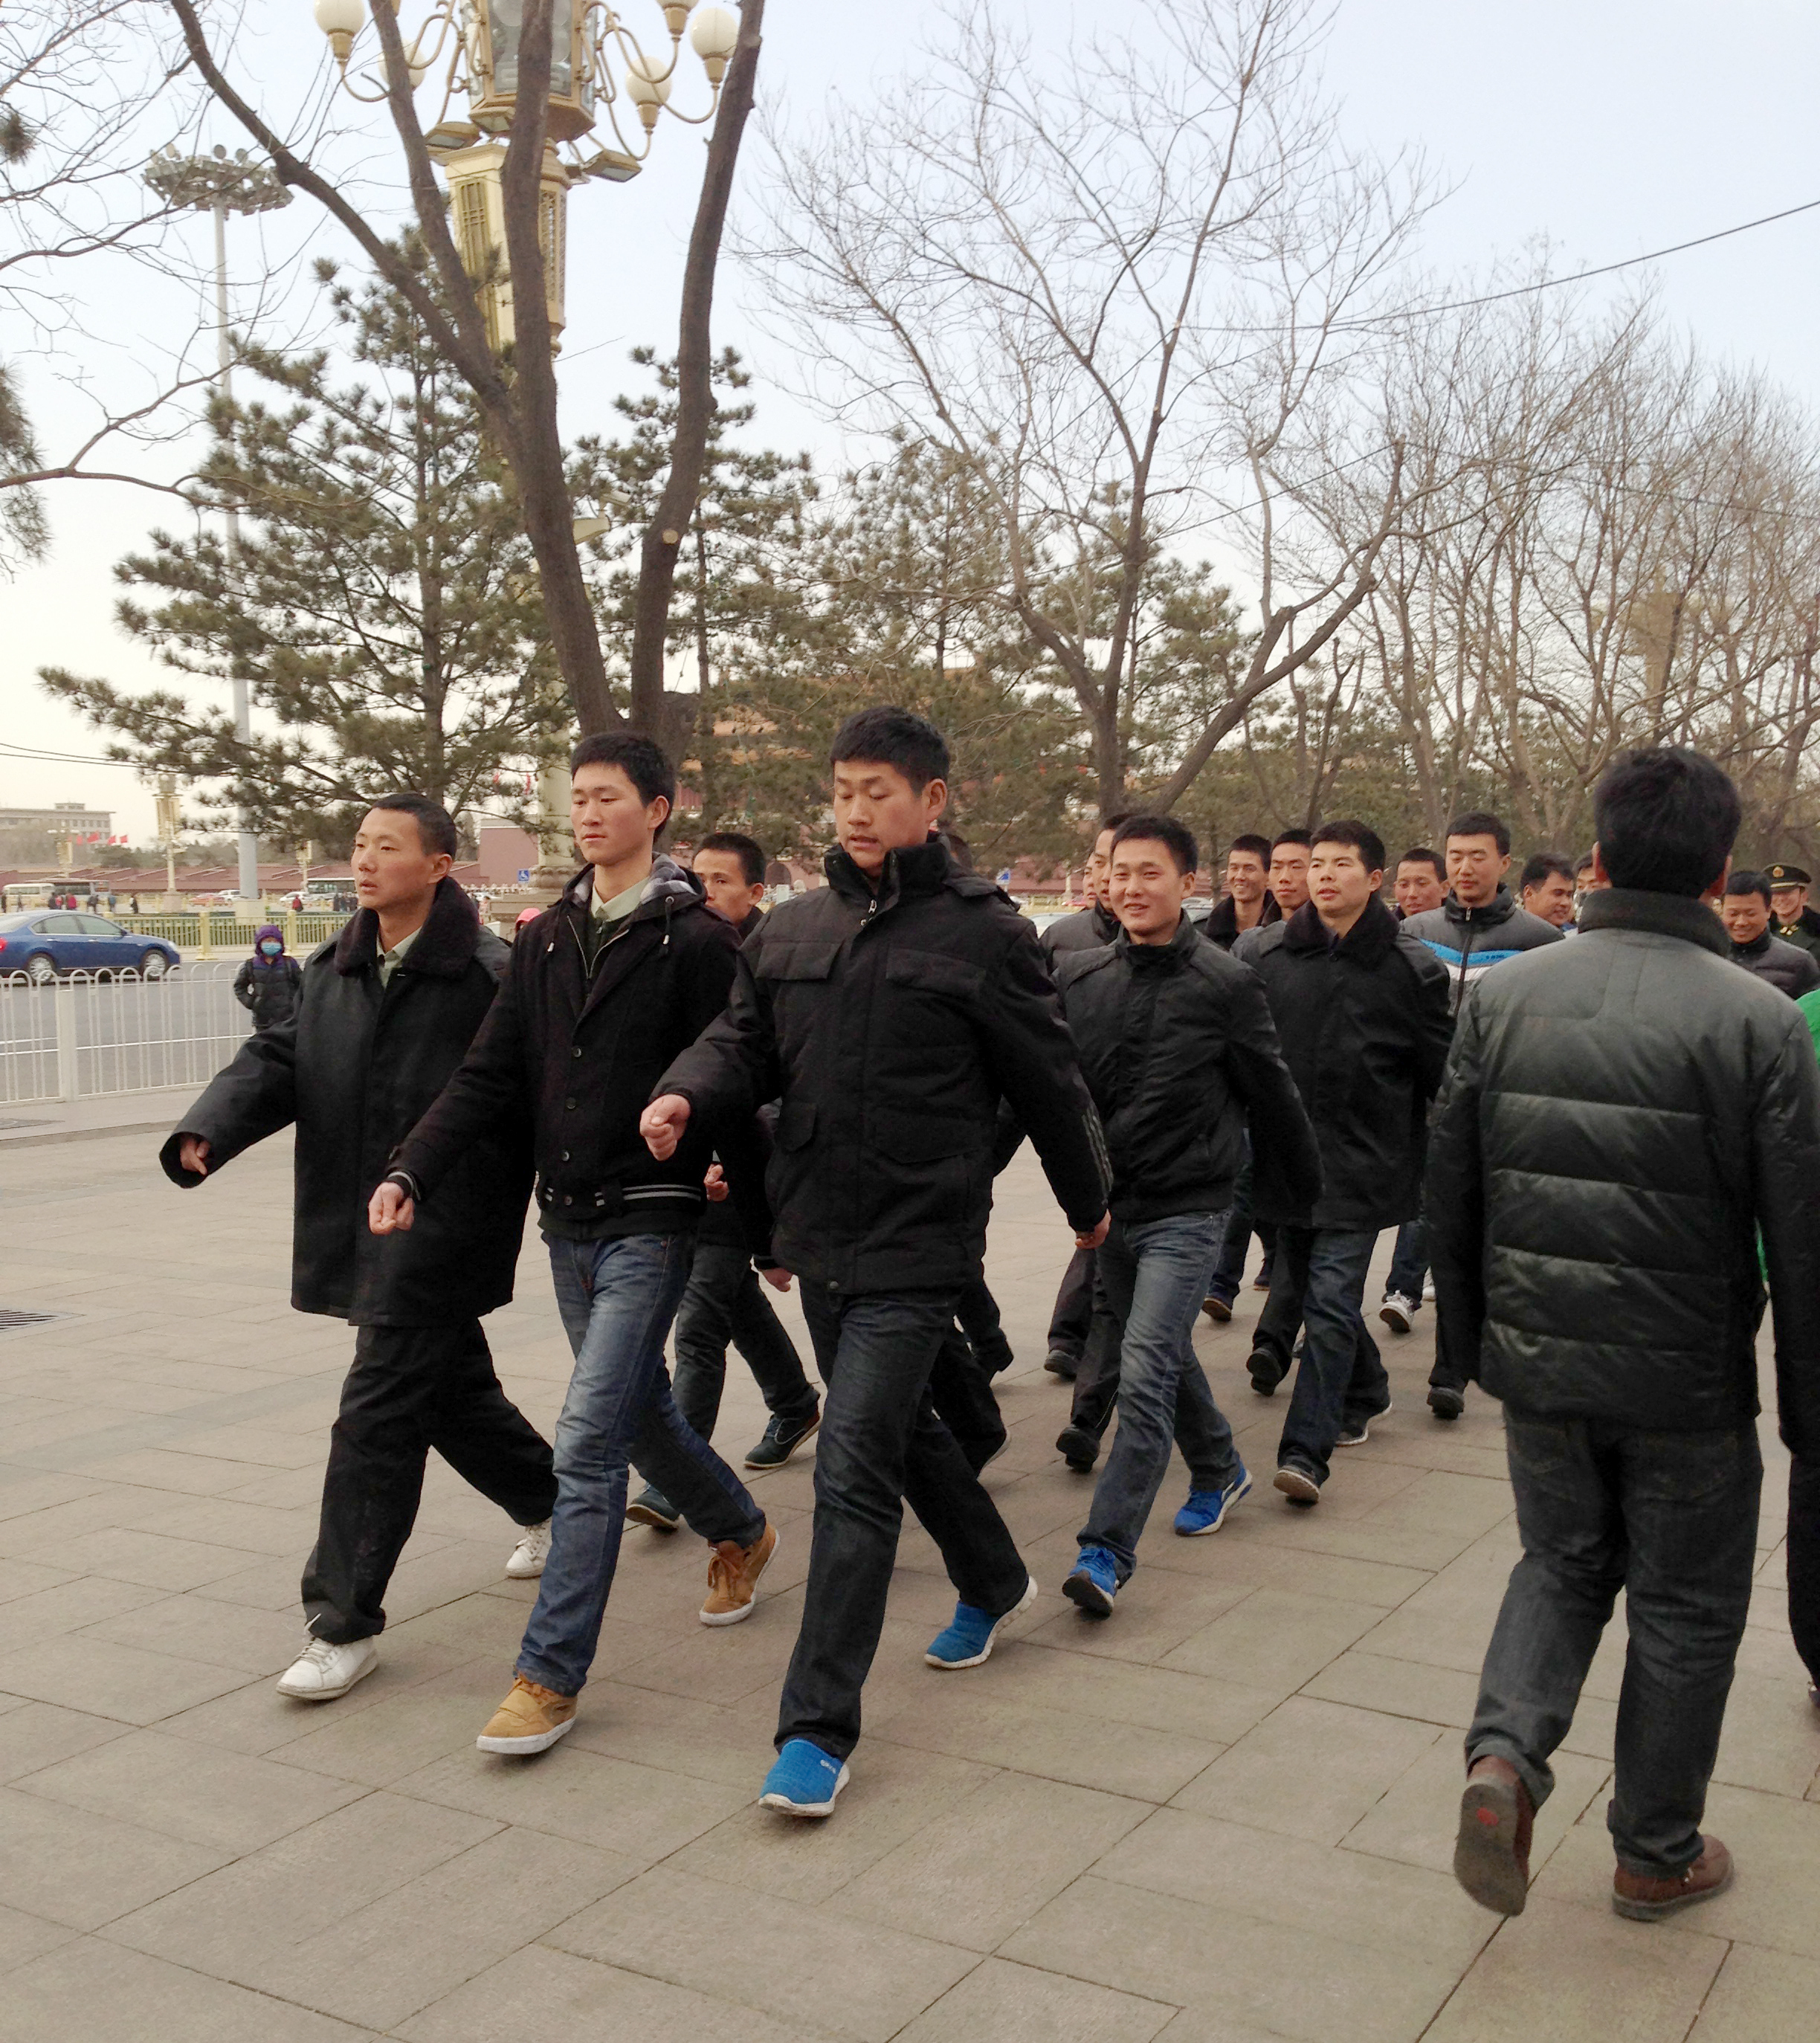 Just another day in Beijing: Plainclothes policemen make the rounds near Tiananmen Square, where the annual meeting of the country's National People's Congress is under way.